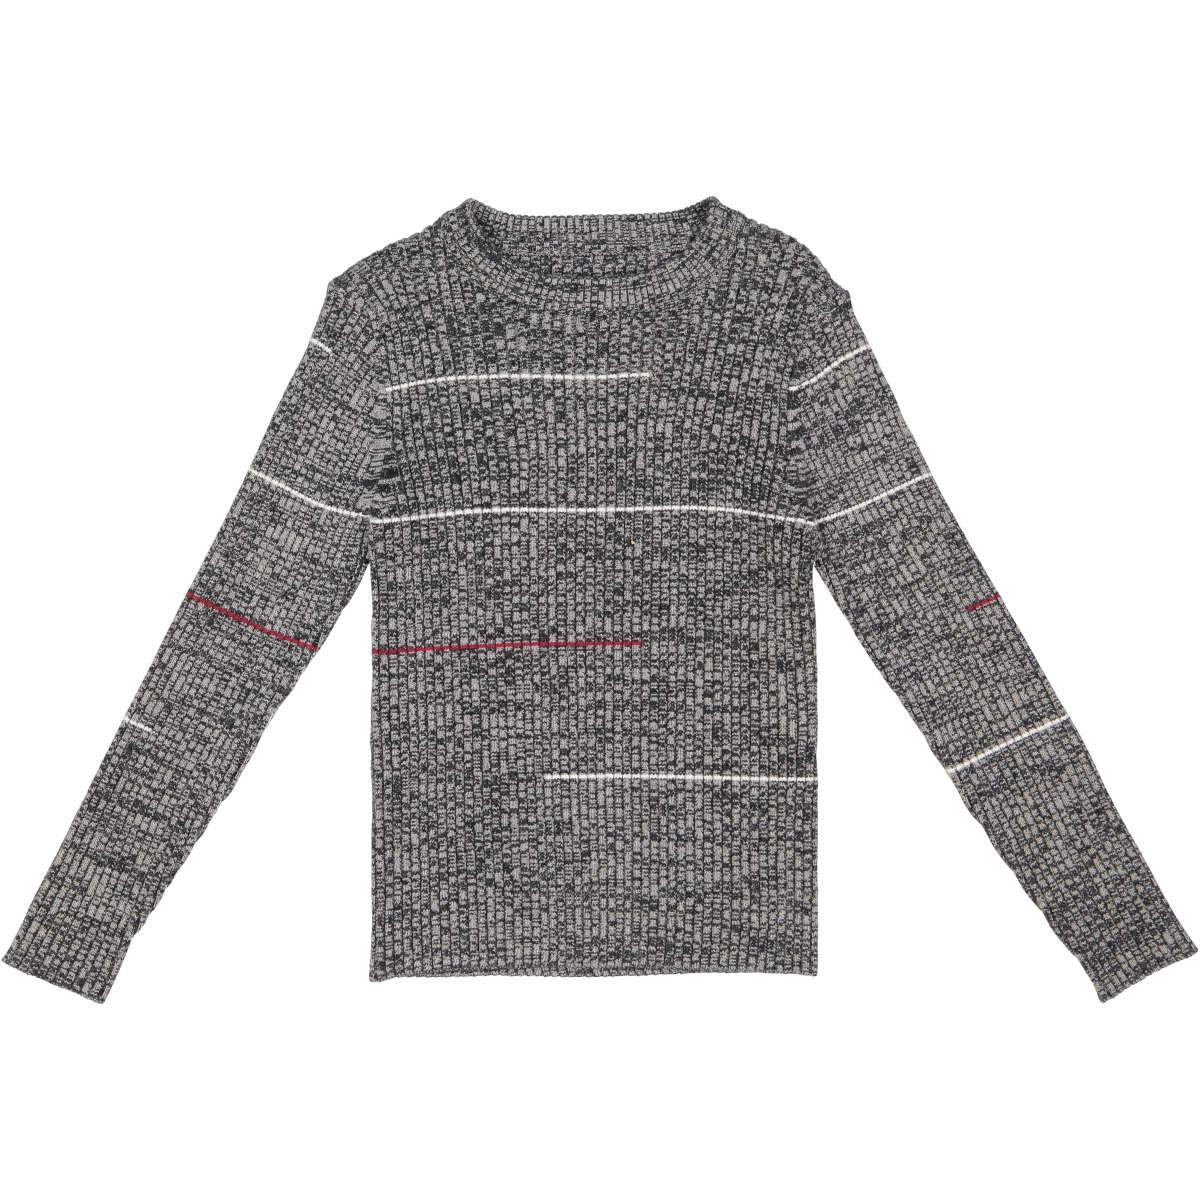 Belati Grey Melange Crewneck Sweater